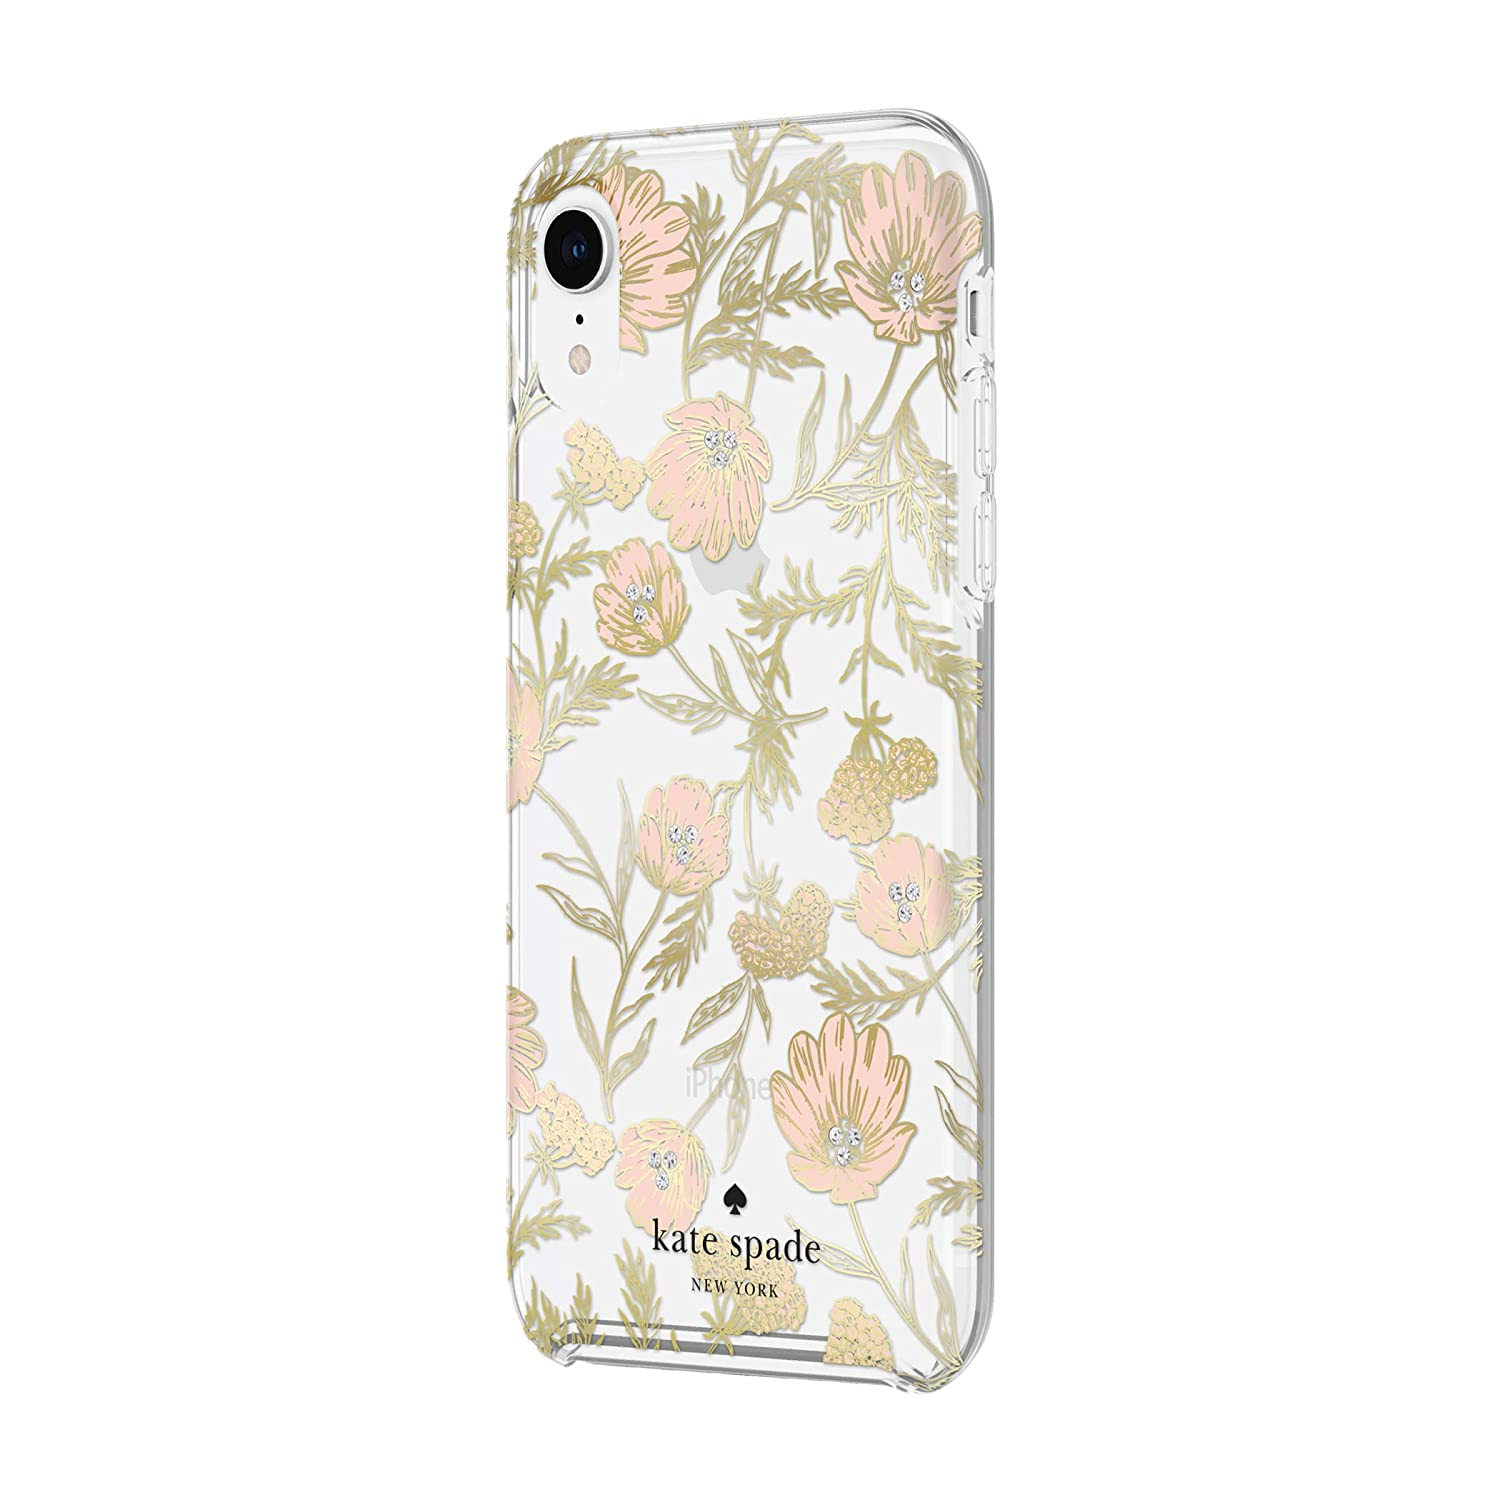 differently 5528e e1612 Kate Spade New York Phone Case for Apple iPhone XR Protective Phone Cases  with Slim Design Drop Protection and Floral Print, Blossom Pink/Gold with  ...